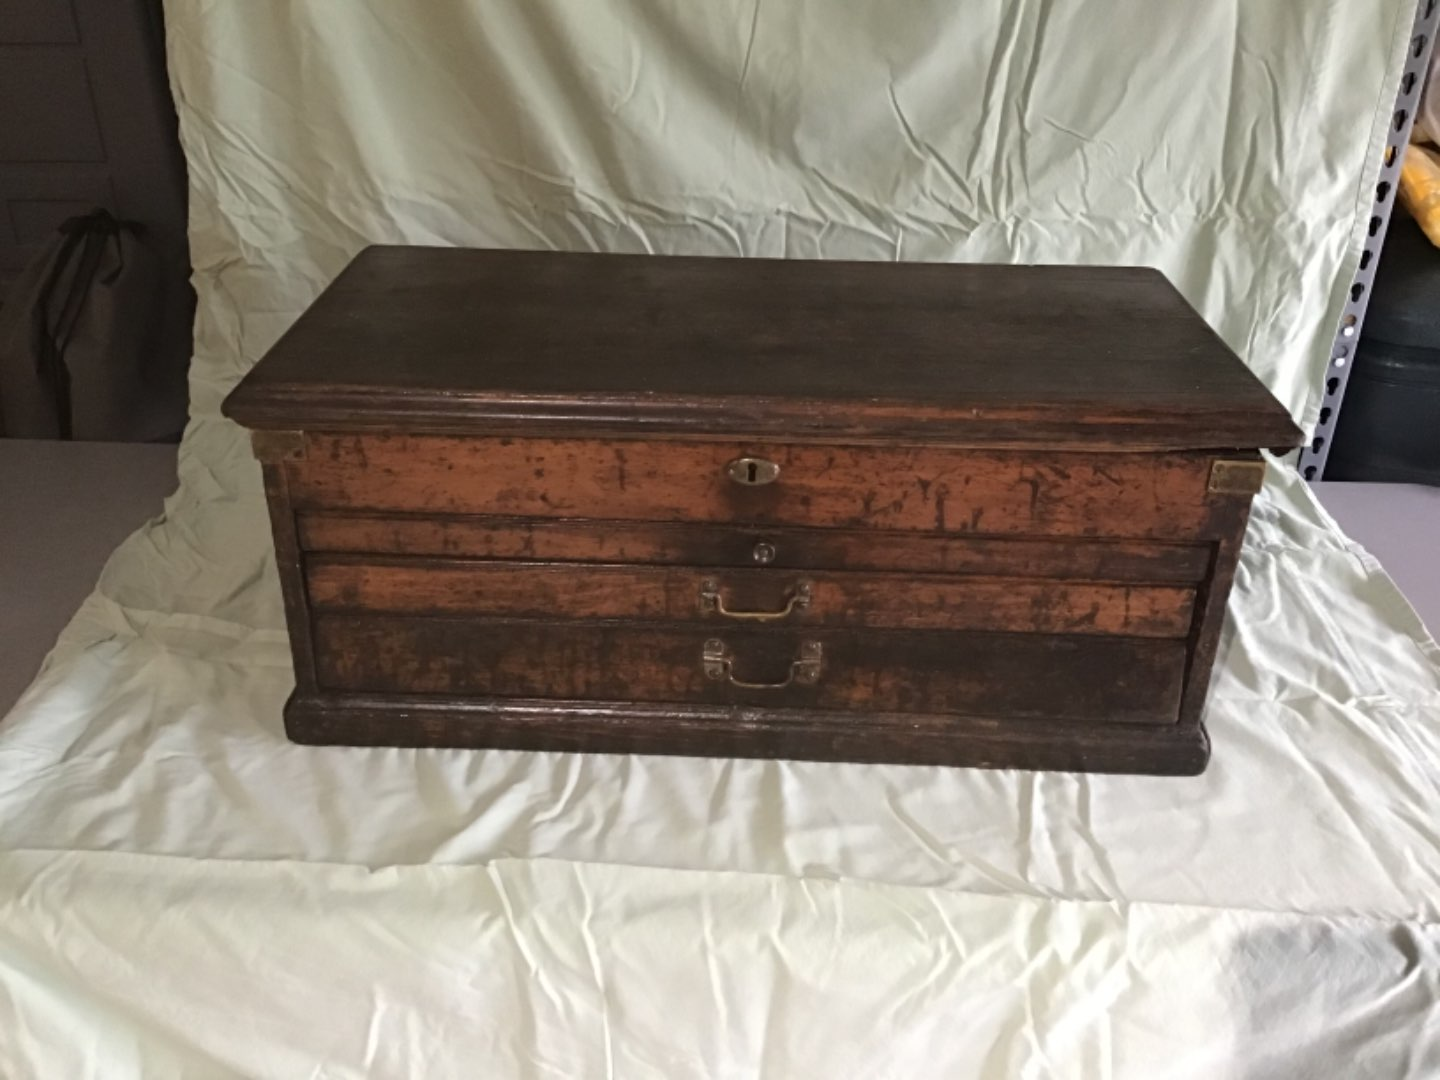 Lot # 31 GREAT Antique Spool Cabinet/ Document Chest w/Hinged Lid, 3 Drawers. Nice!